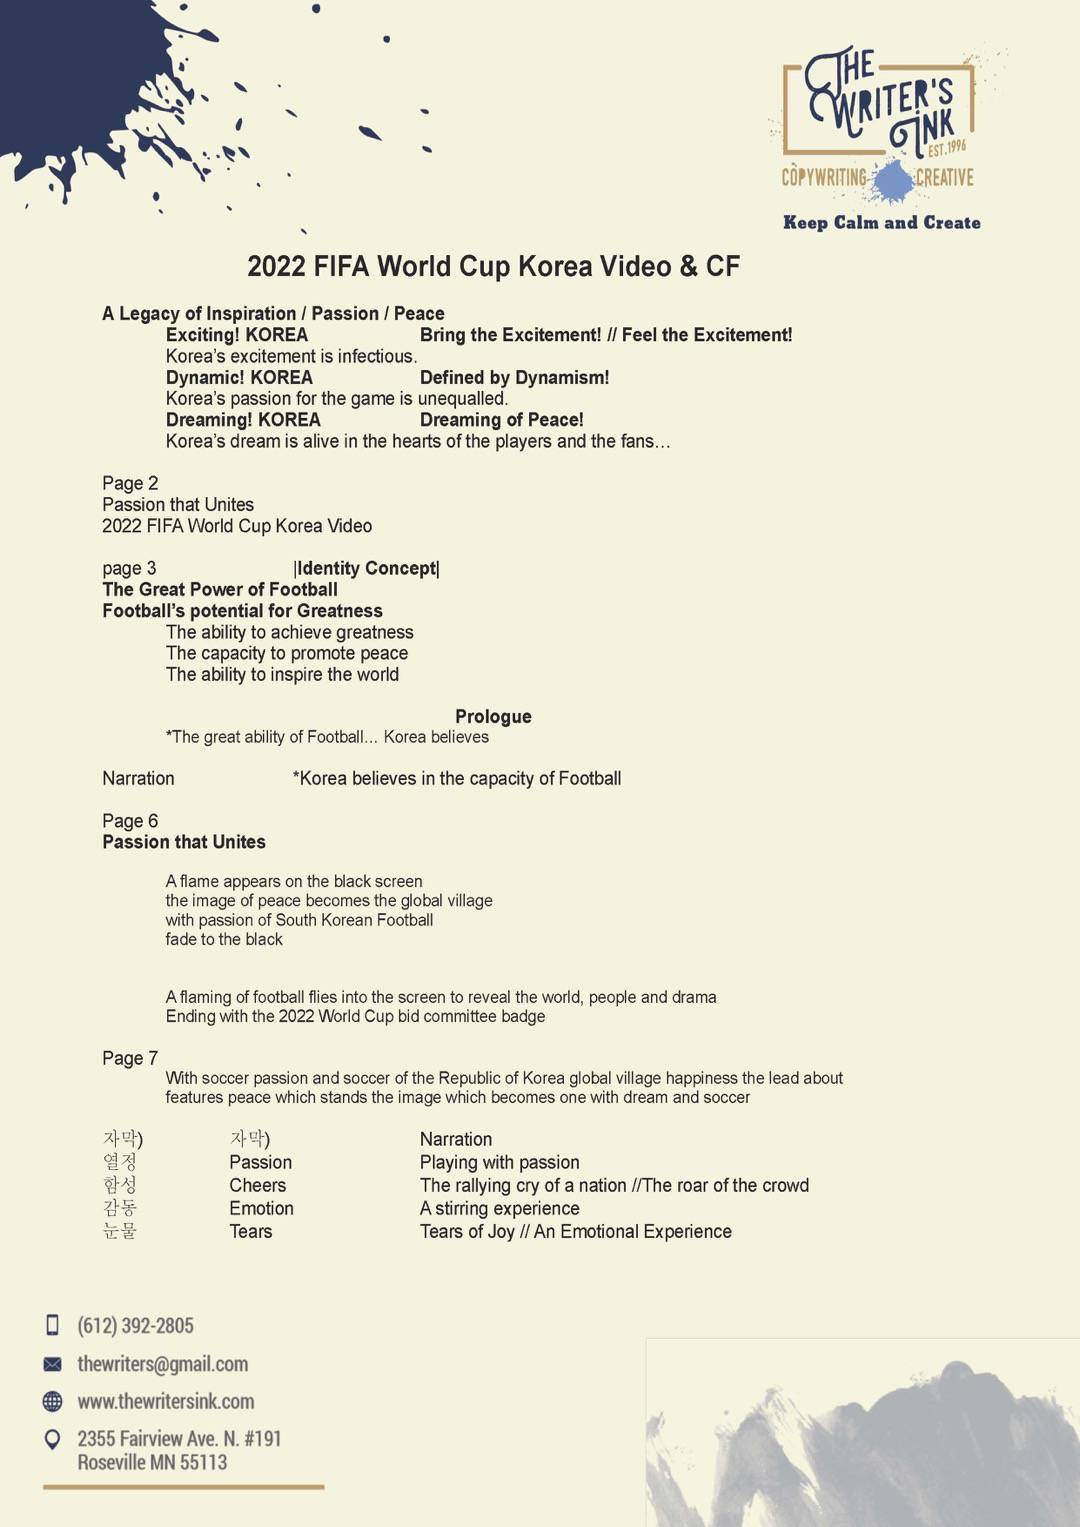 2022 FIFA World Cup Korea Video & CF_Page_1